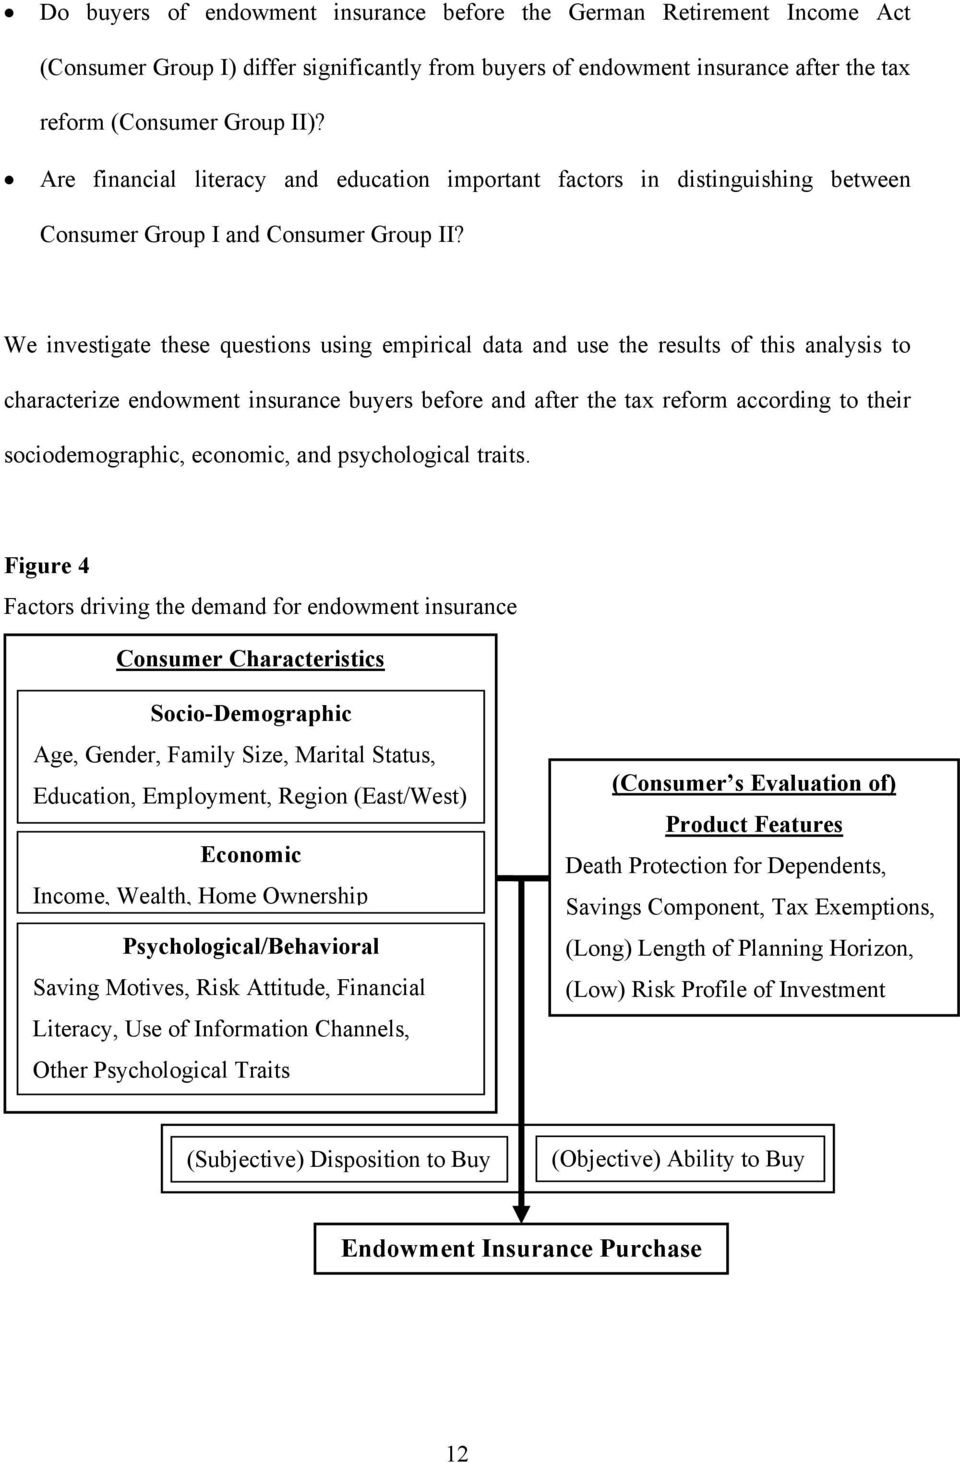 We investigate these questions using empirical data and use the results of this analysis to characterize endowment insurance buyers before and after the tax reform according to their